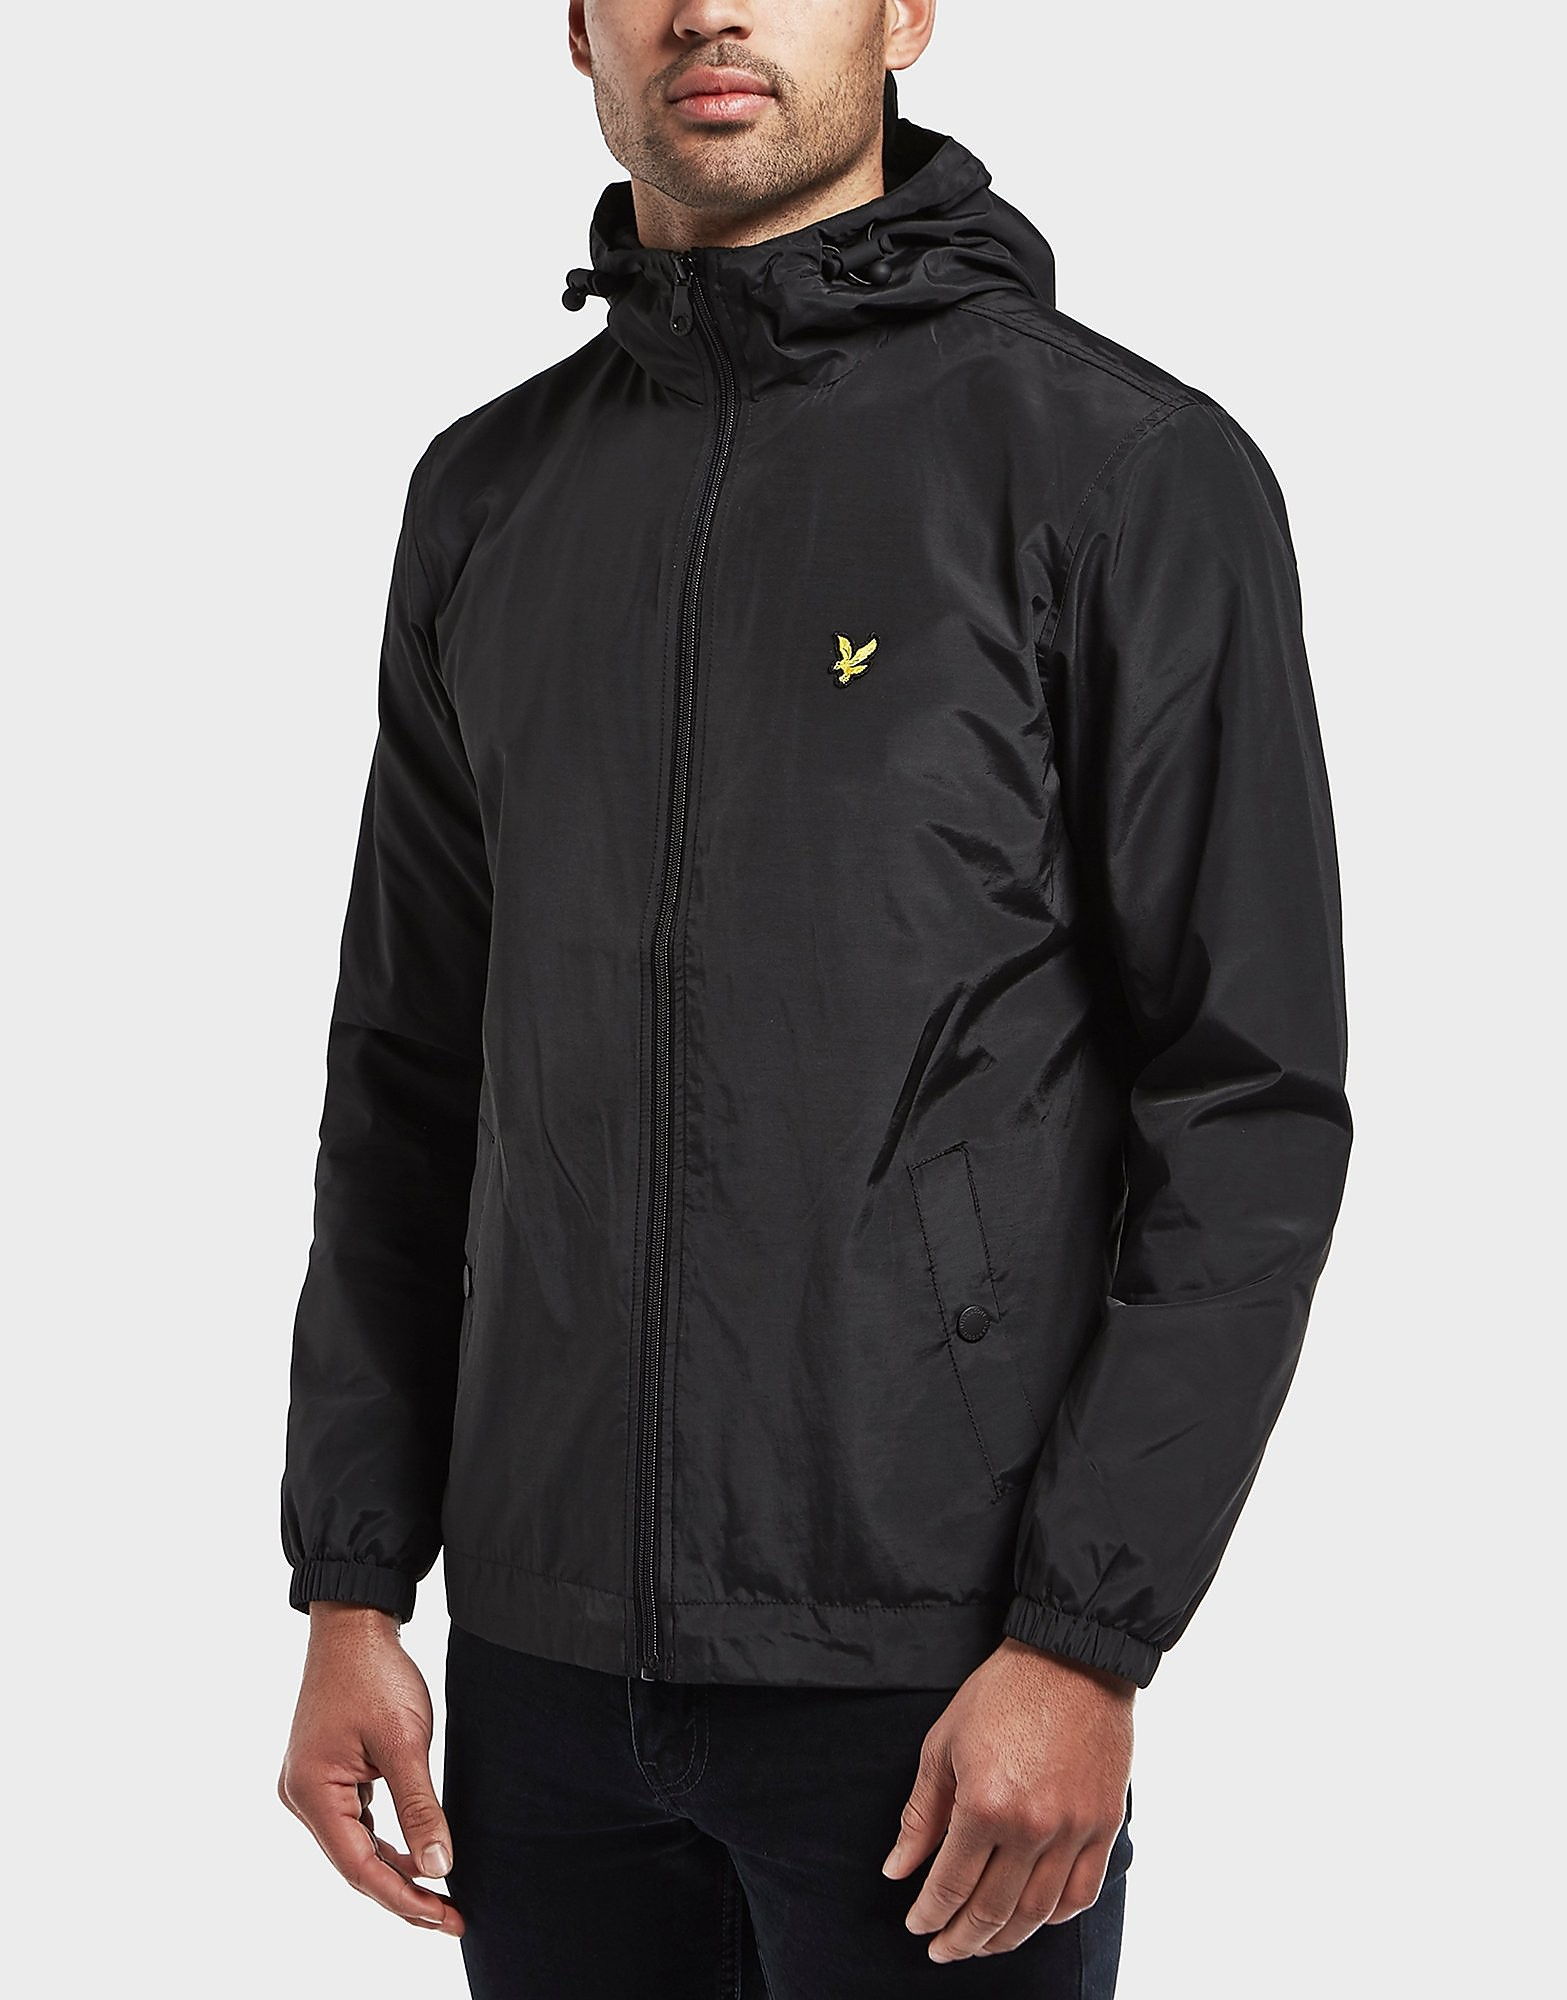 Lyle & Scott Full Zip Hooded Lightweight Jacket